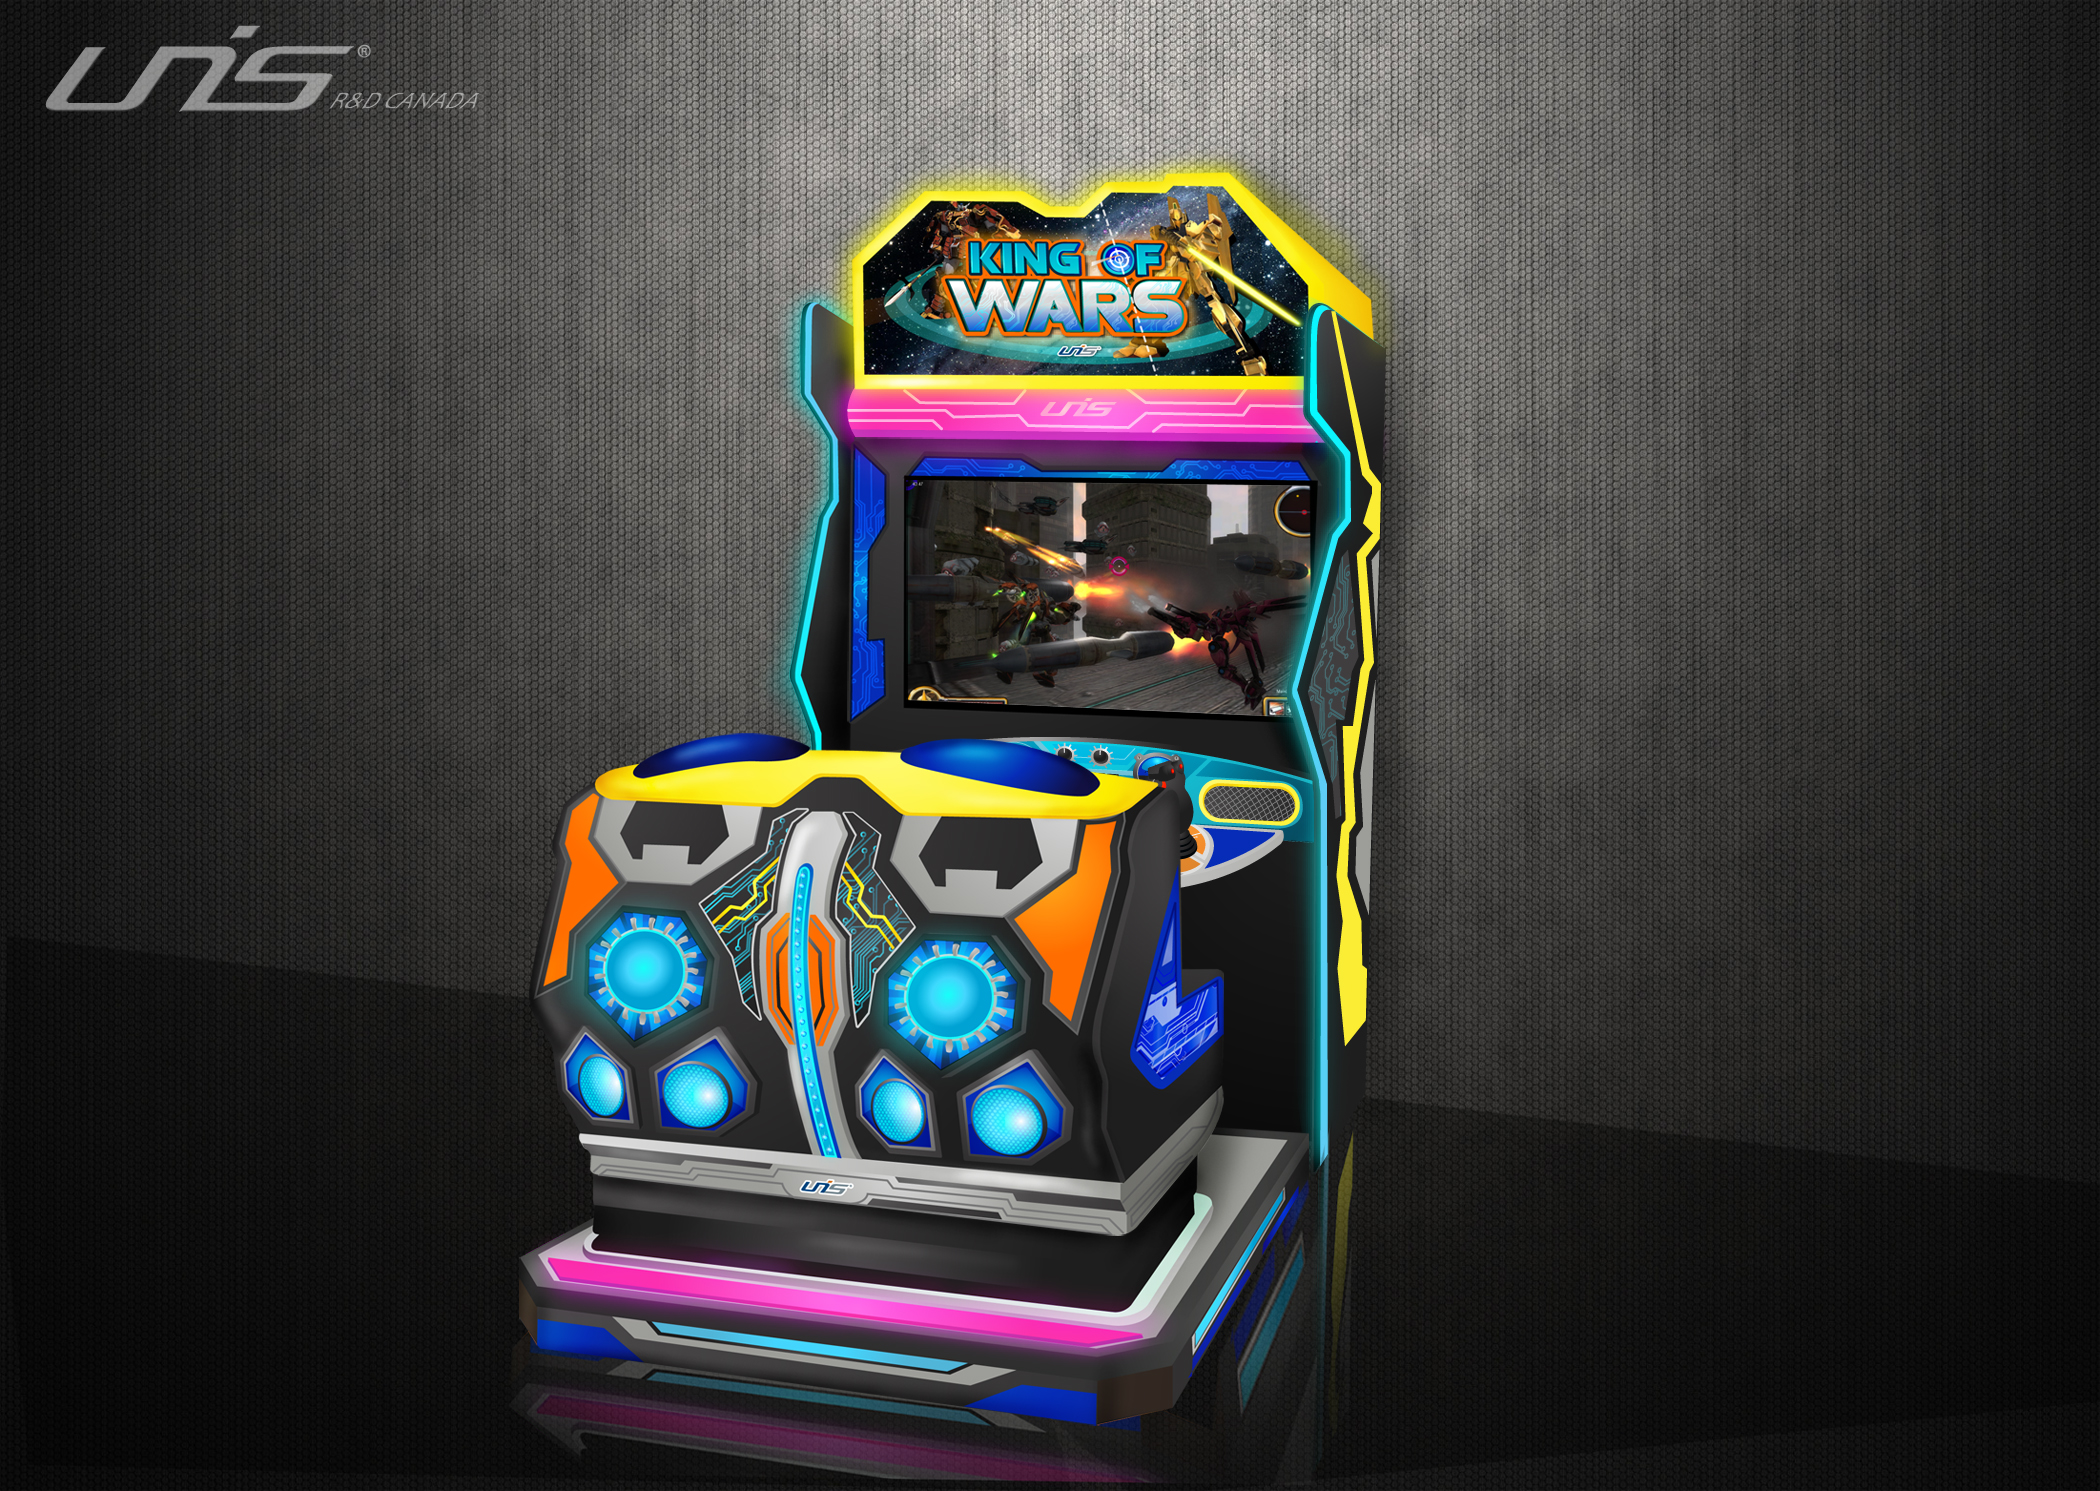 King of War Arcade game Design. Created cabinet design, decals and all logos.